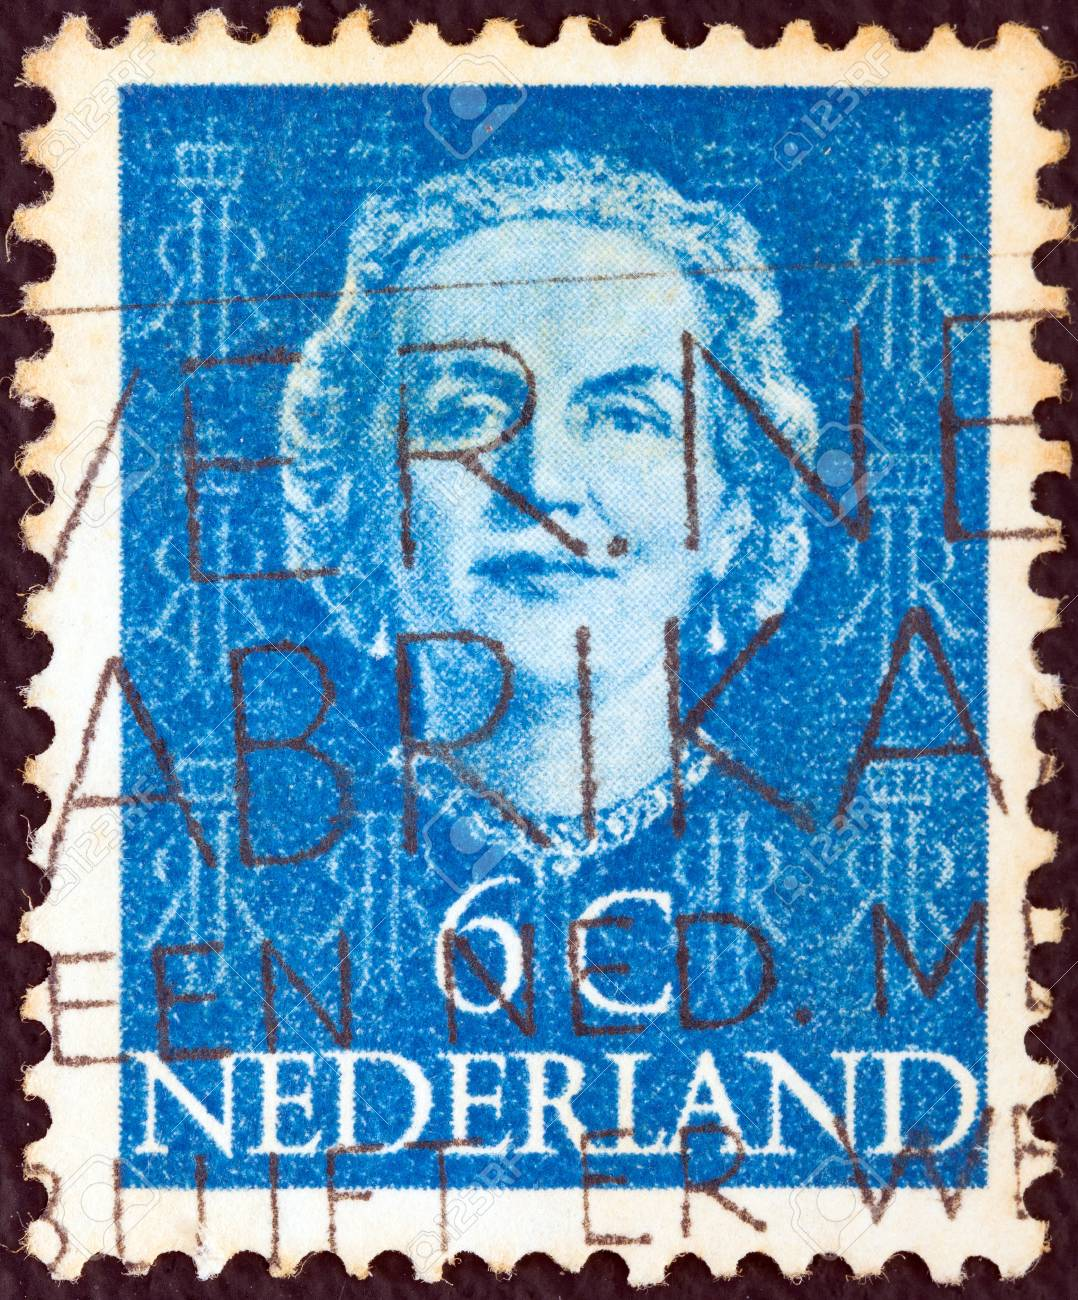 NETHERLANDS - CIRCA 1949: A stamp printed in the Netherlands shows Queen Juliana, circa 1949.  Stock Photo - 15740193